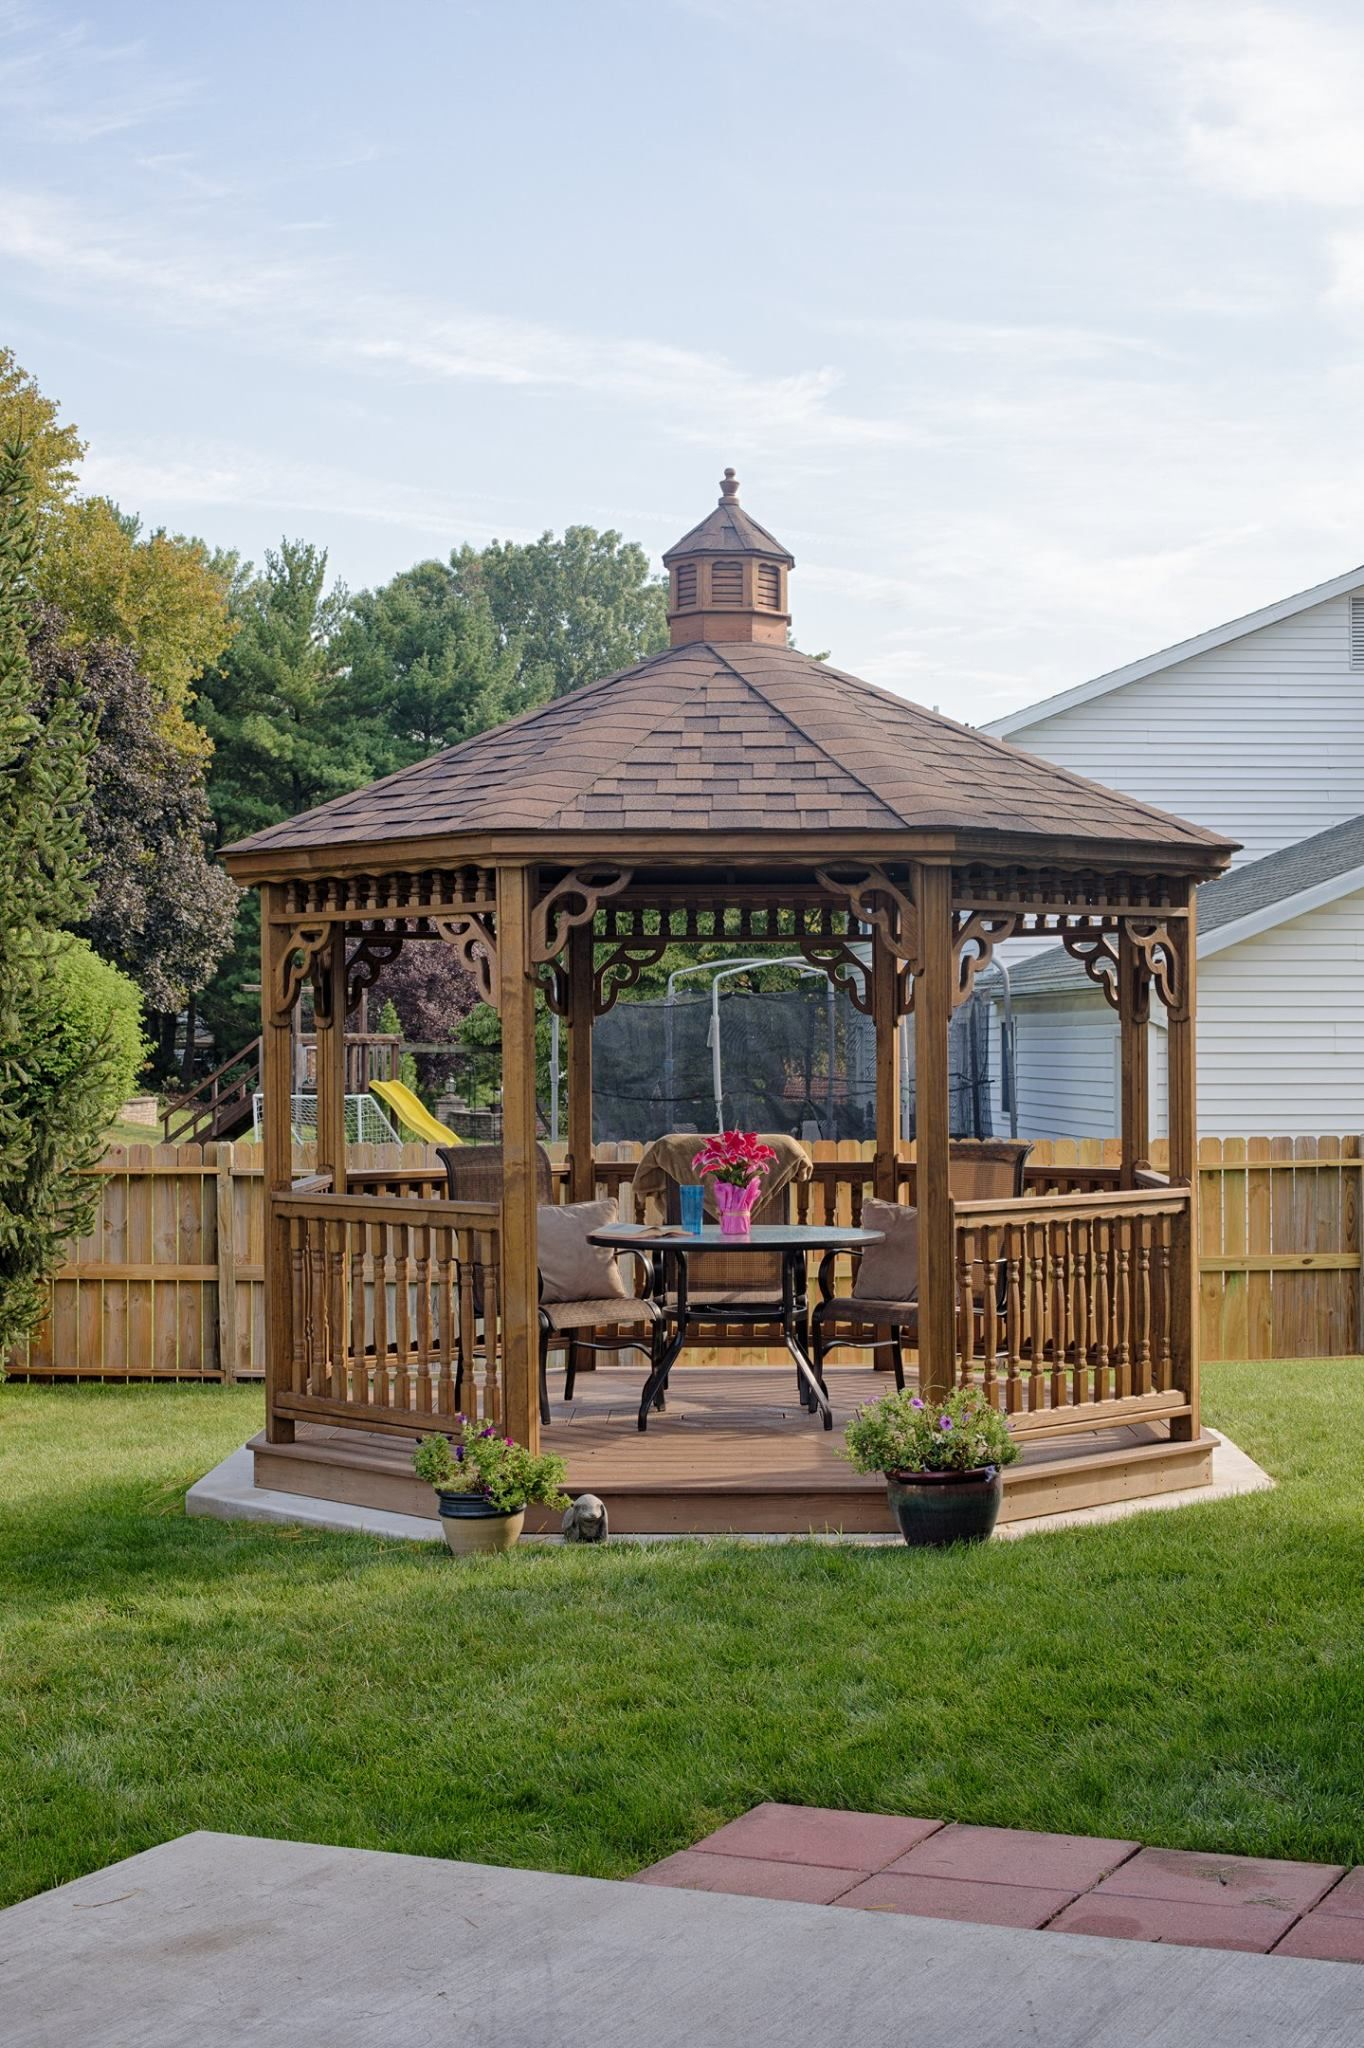 A New England Style Gazebo Is Perfect For The Outdoor Dining Experience.